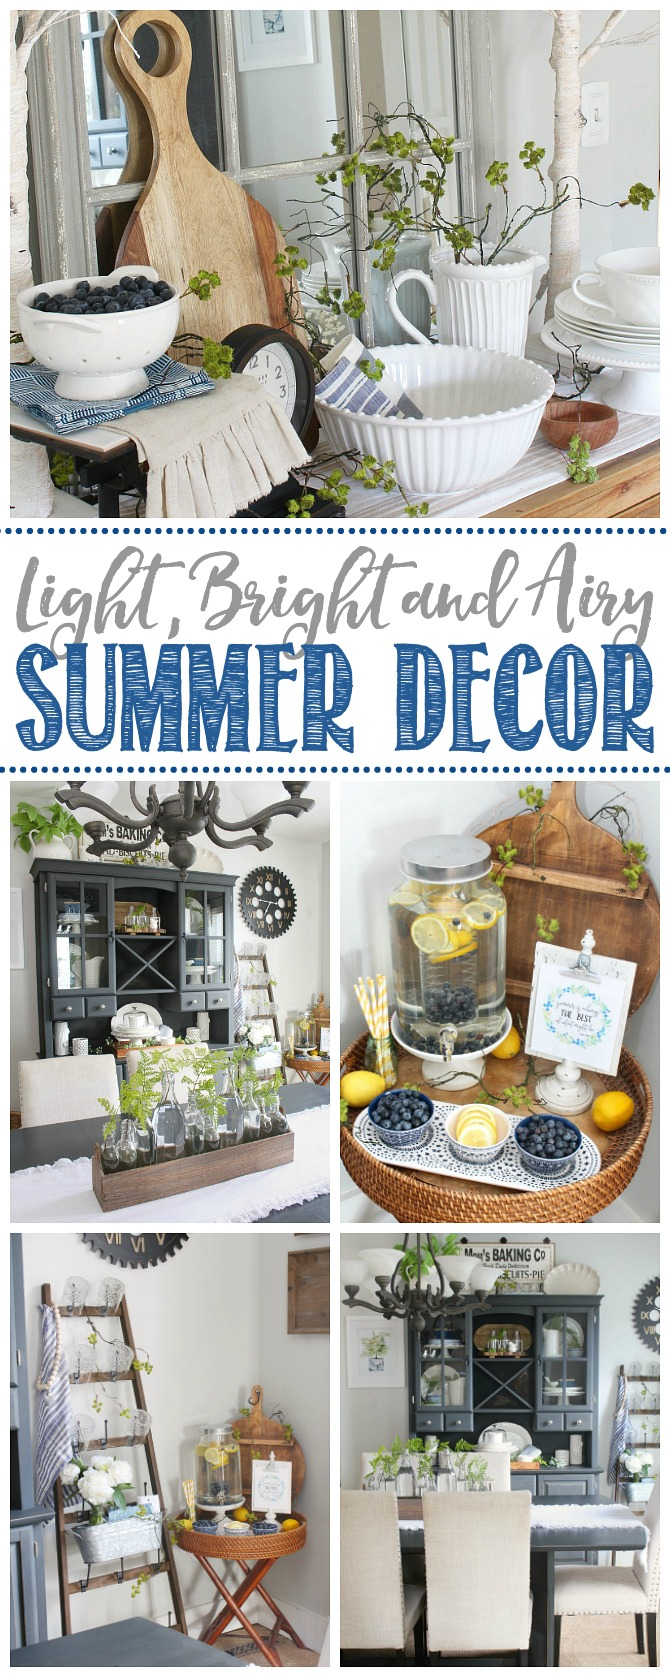 Collage of light, bright and airy summer decor ideas.